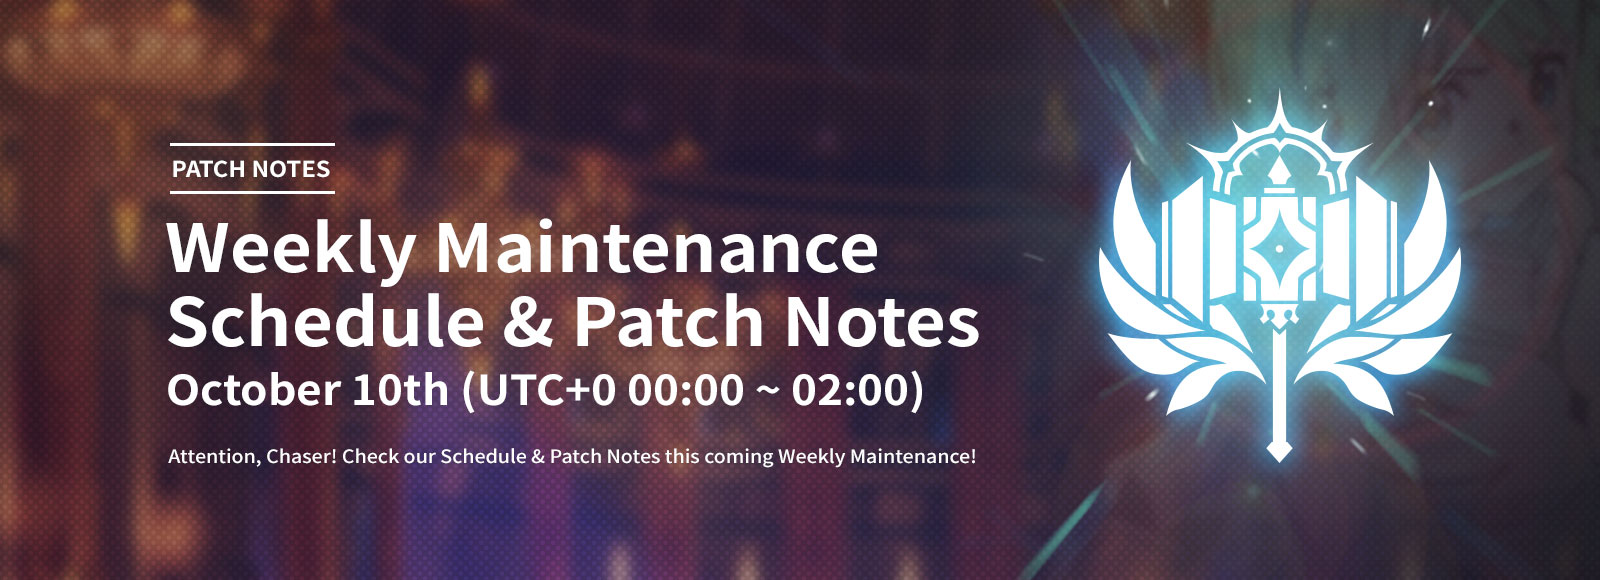 October 10th Weekly Maintenance Schedule & Patch Notes